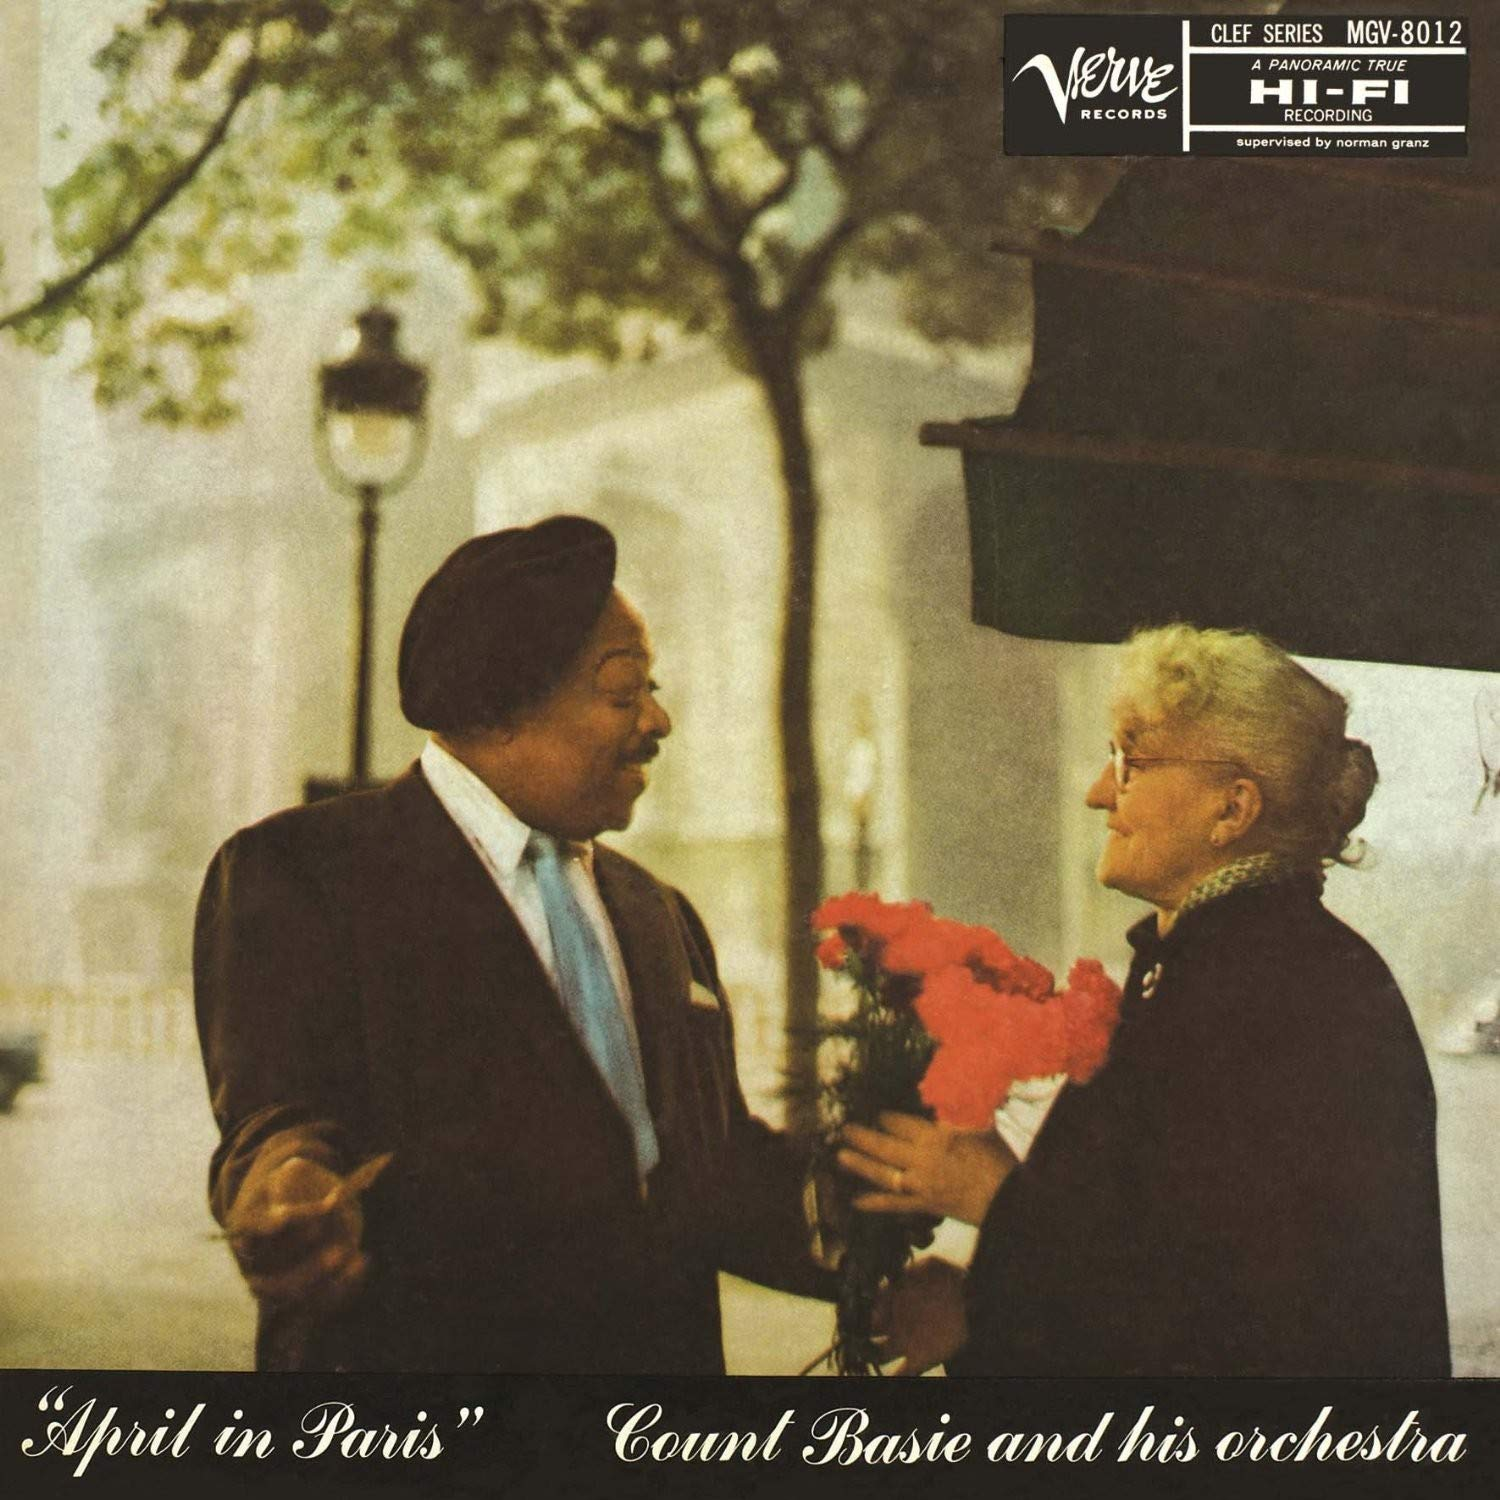 Count Basie: April in Paris - Tower Records Japan Hybrid Mono SACD (PROZ-1117)